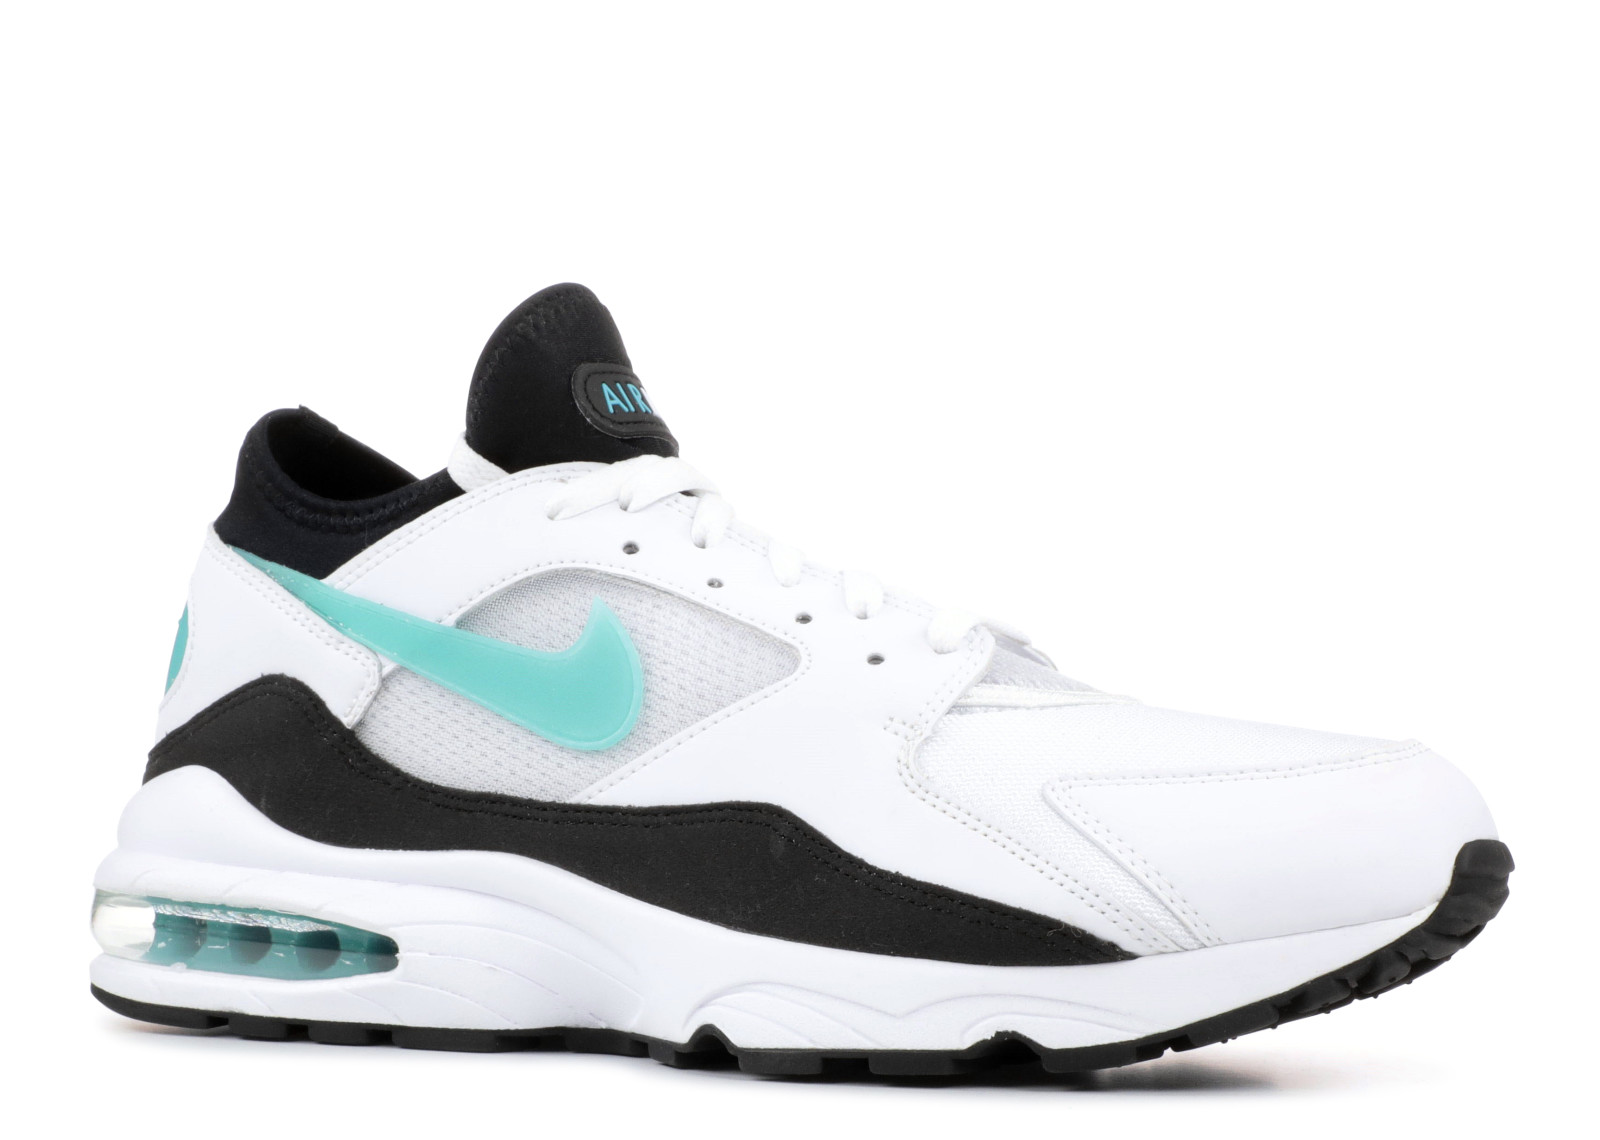 a4f5765191 Nike - Men - Air Max 93 'Dusty Cactus' - 306551-107 - Size 10